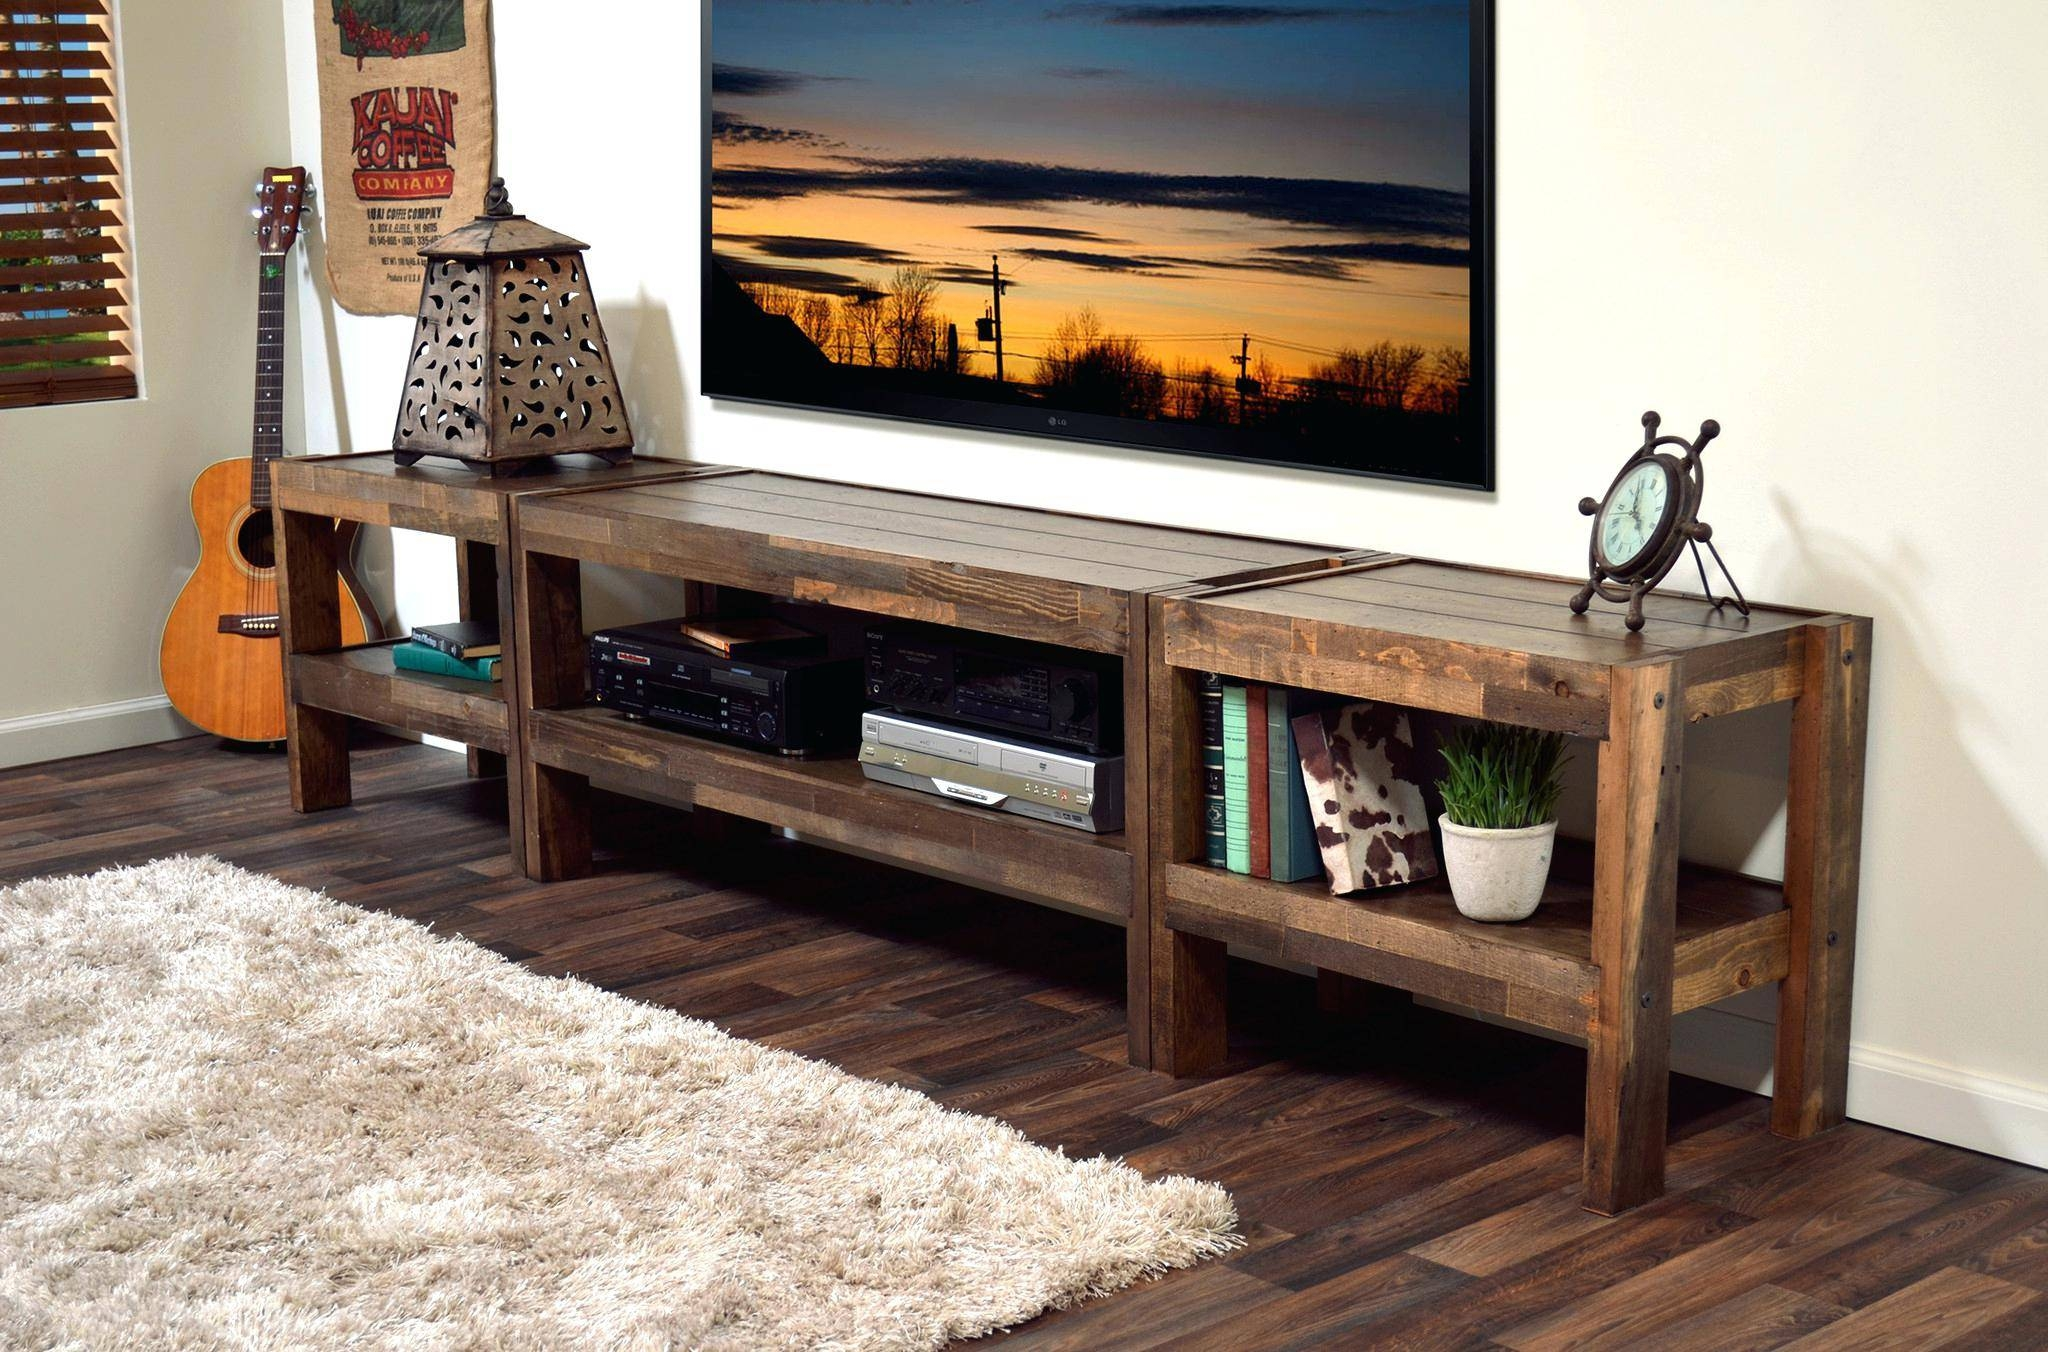 Matching Oak Coffee Table And Tv Stand | Coffee Tables Decoration regarding Tv Unit And Coffee Table Sets (Image 18 of 30)